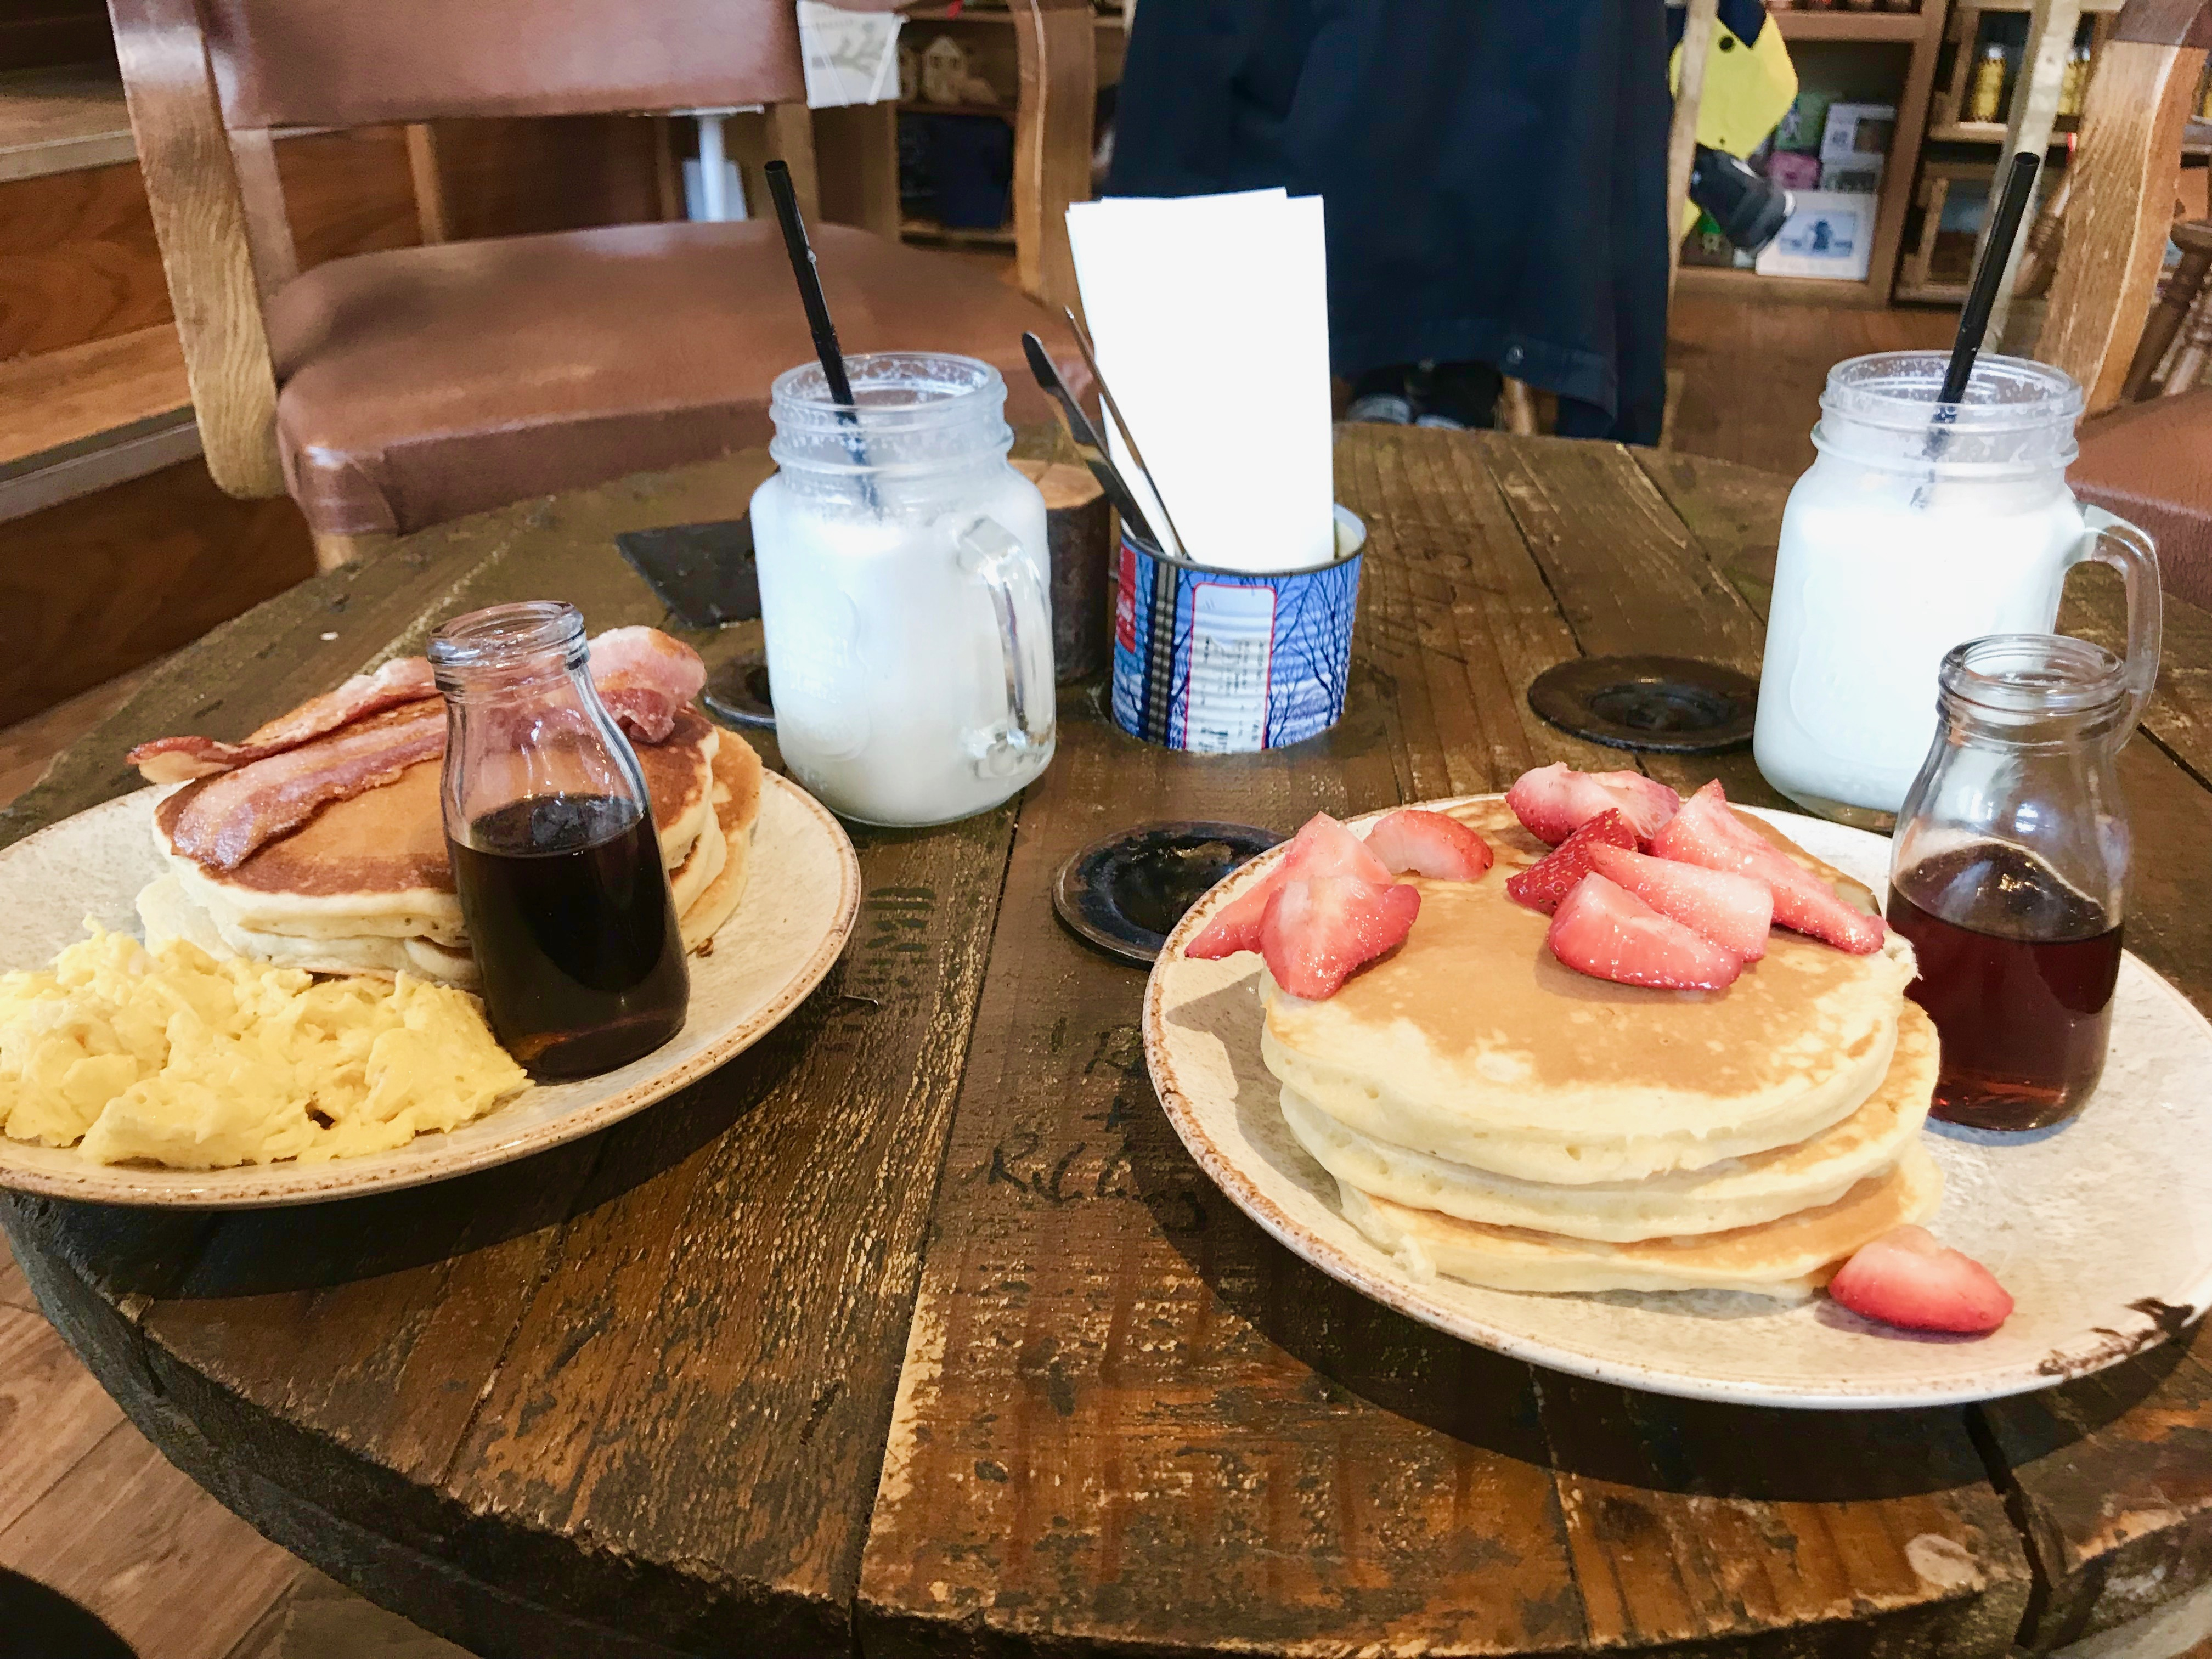 The Cabin pancakes